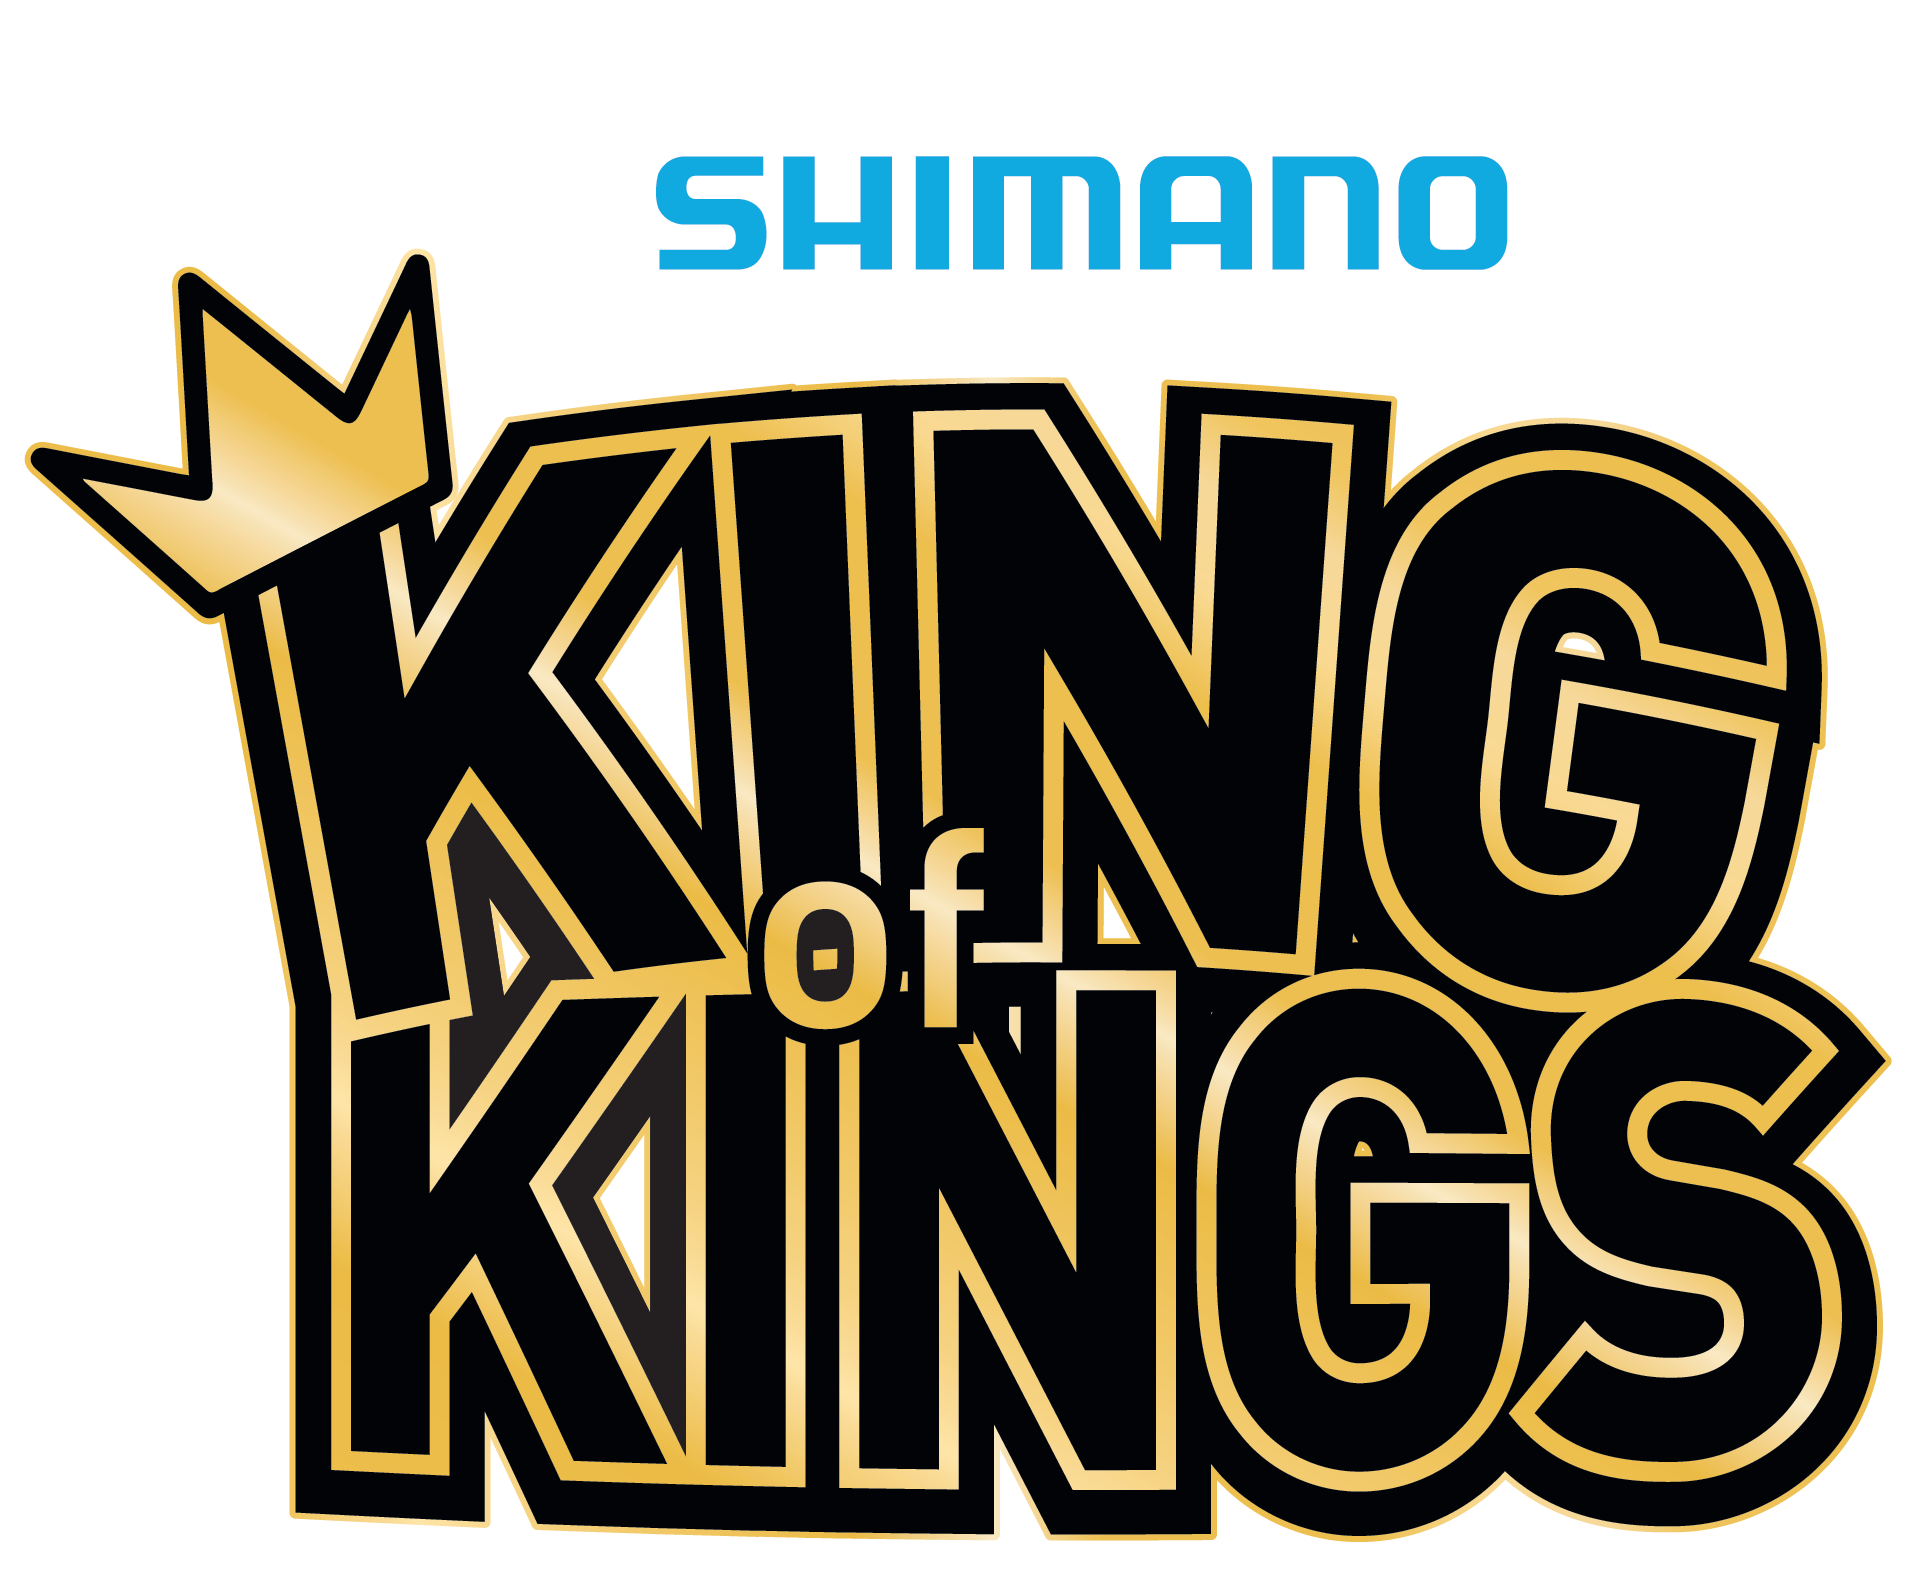 King of Kings - Final Logo.png